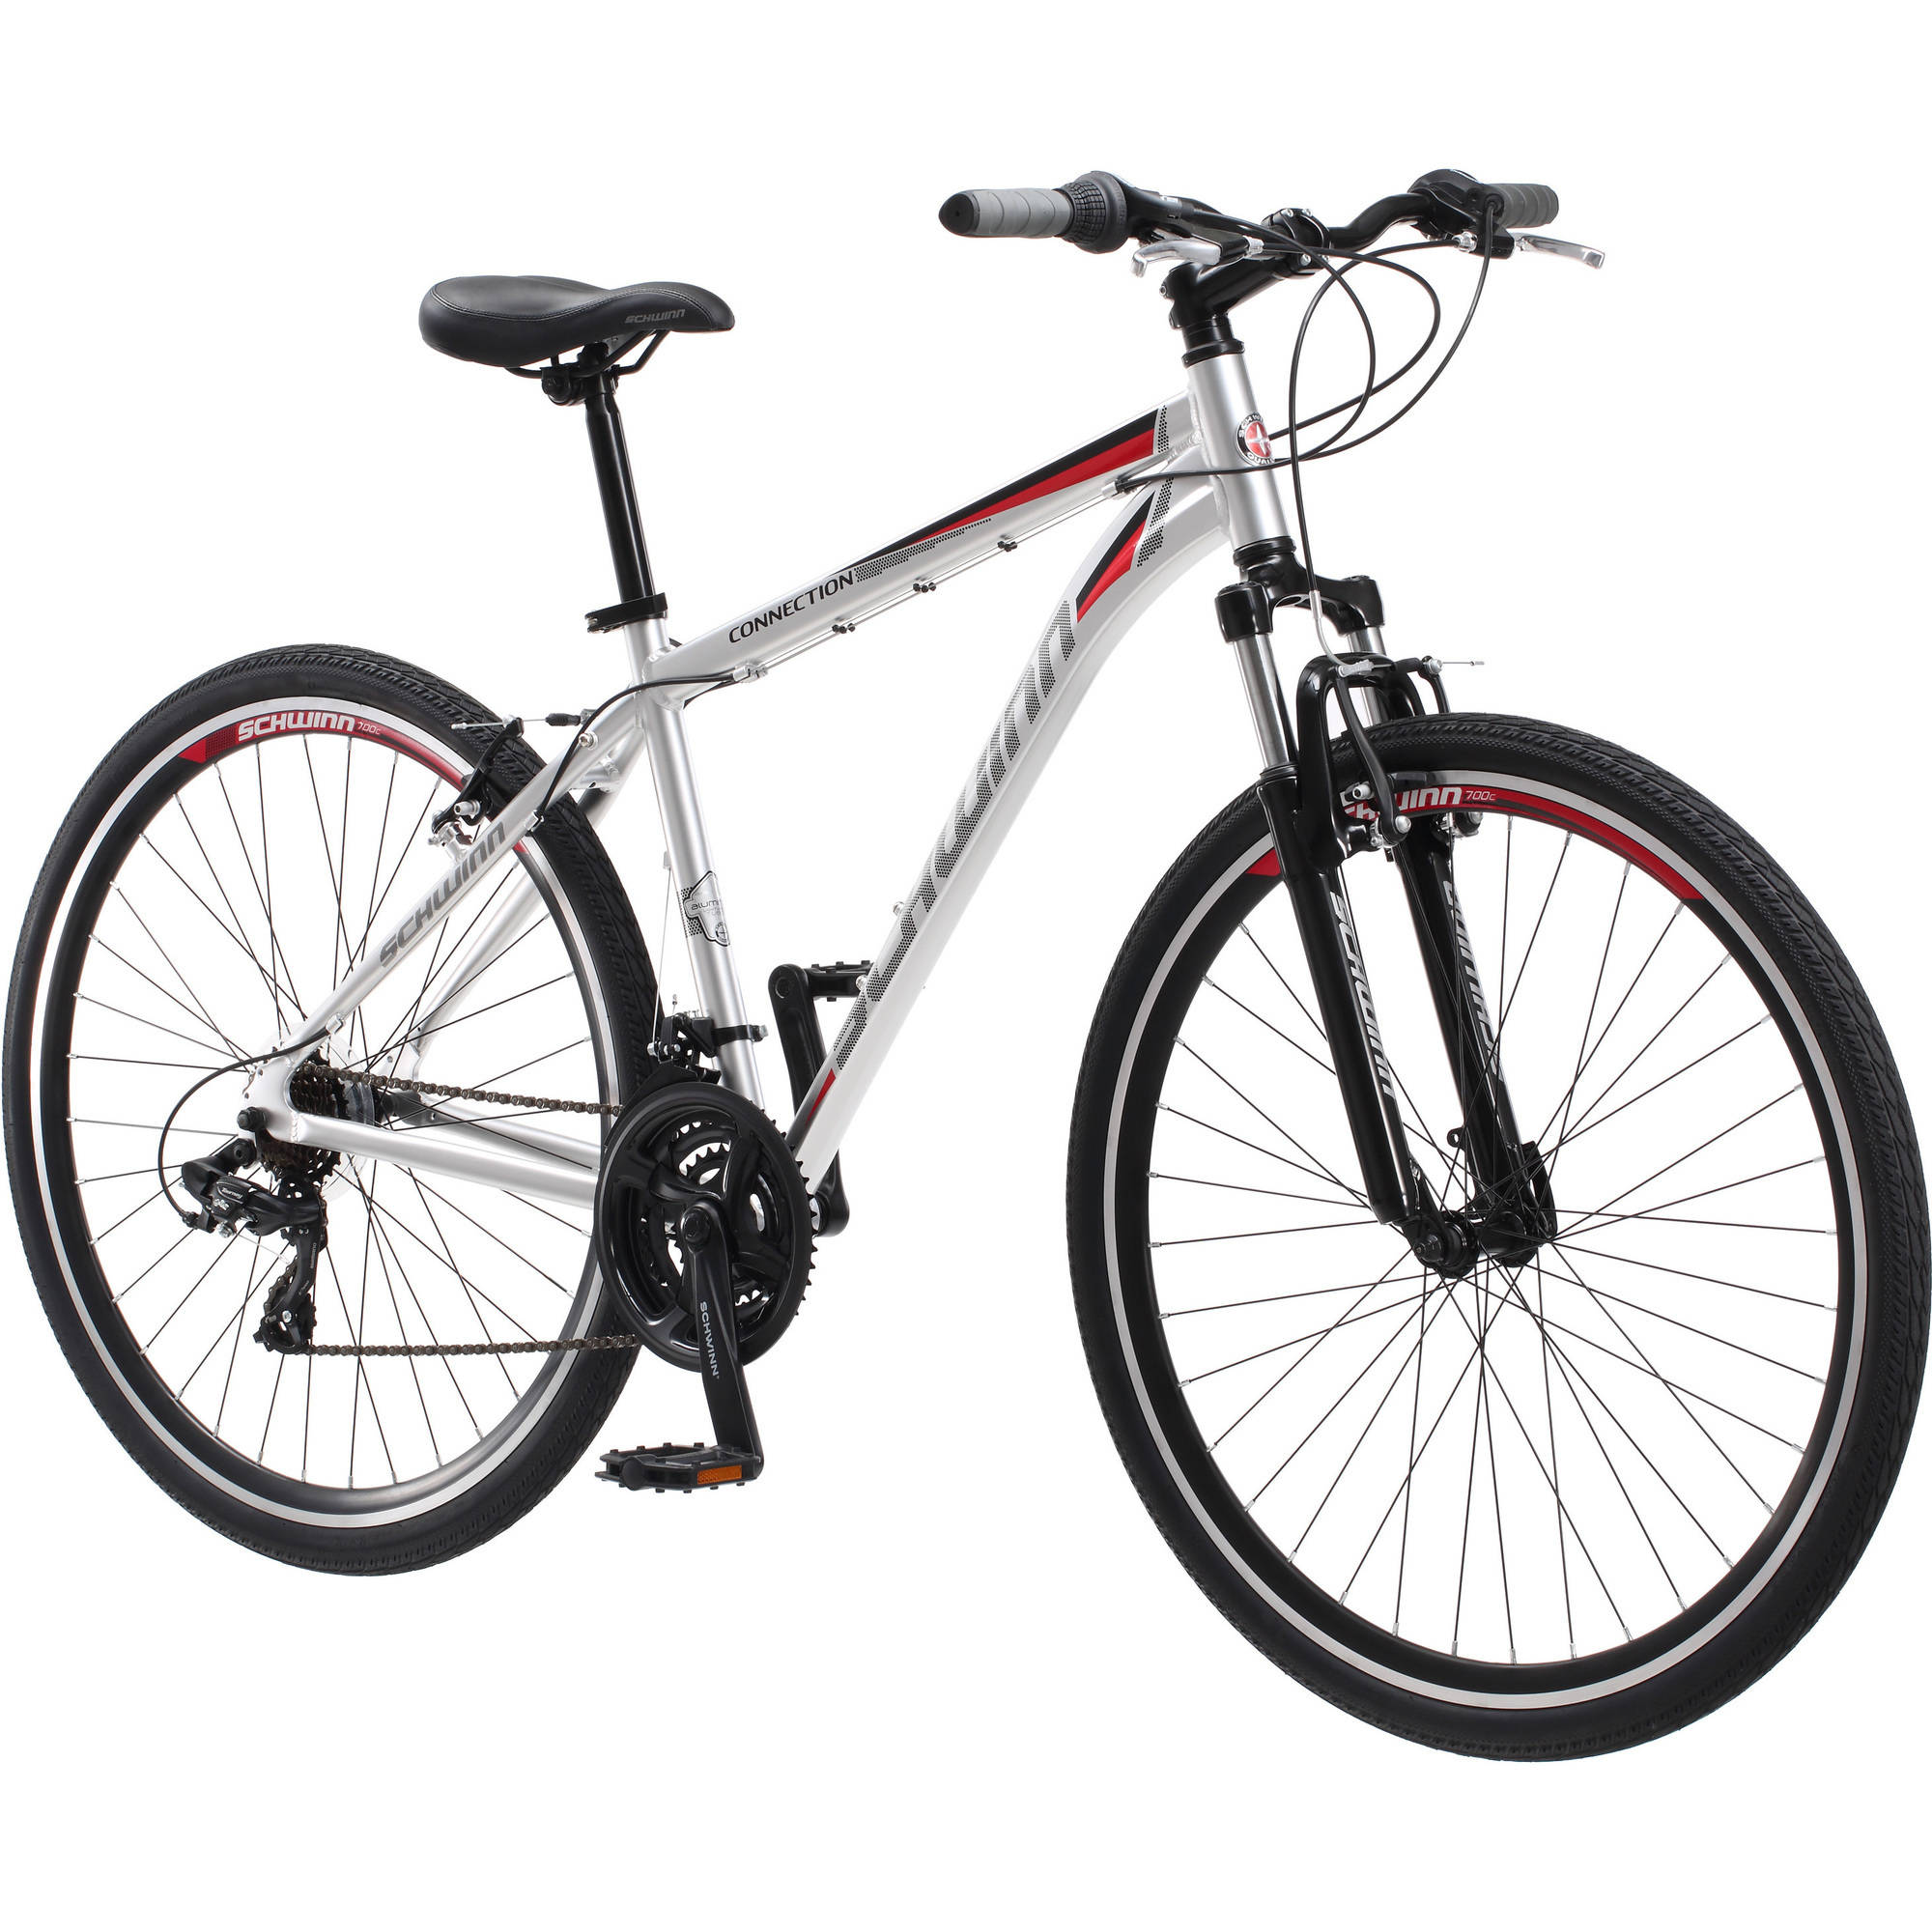 Schwinn 700c Men's Connection Multi-Use Bike